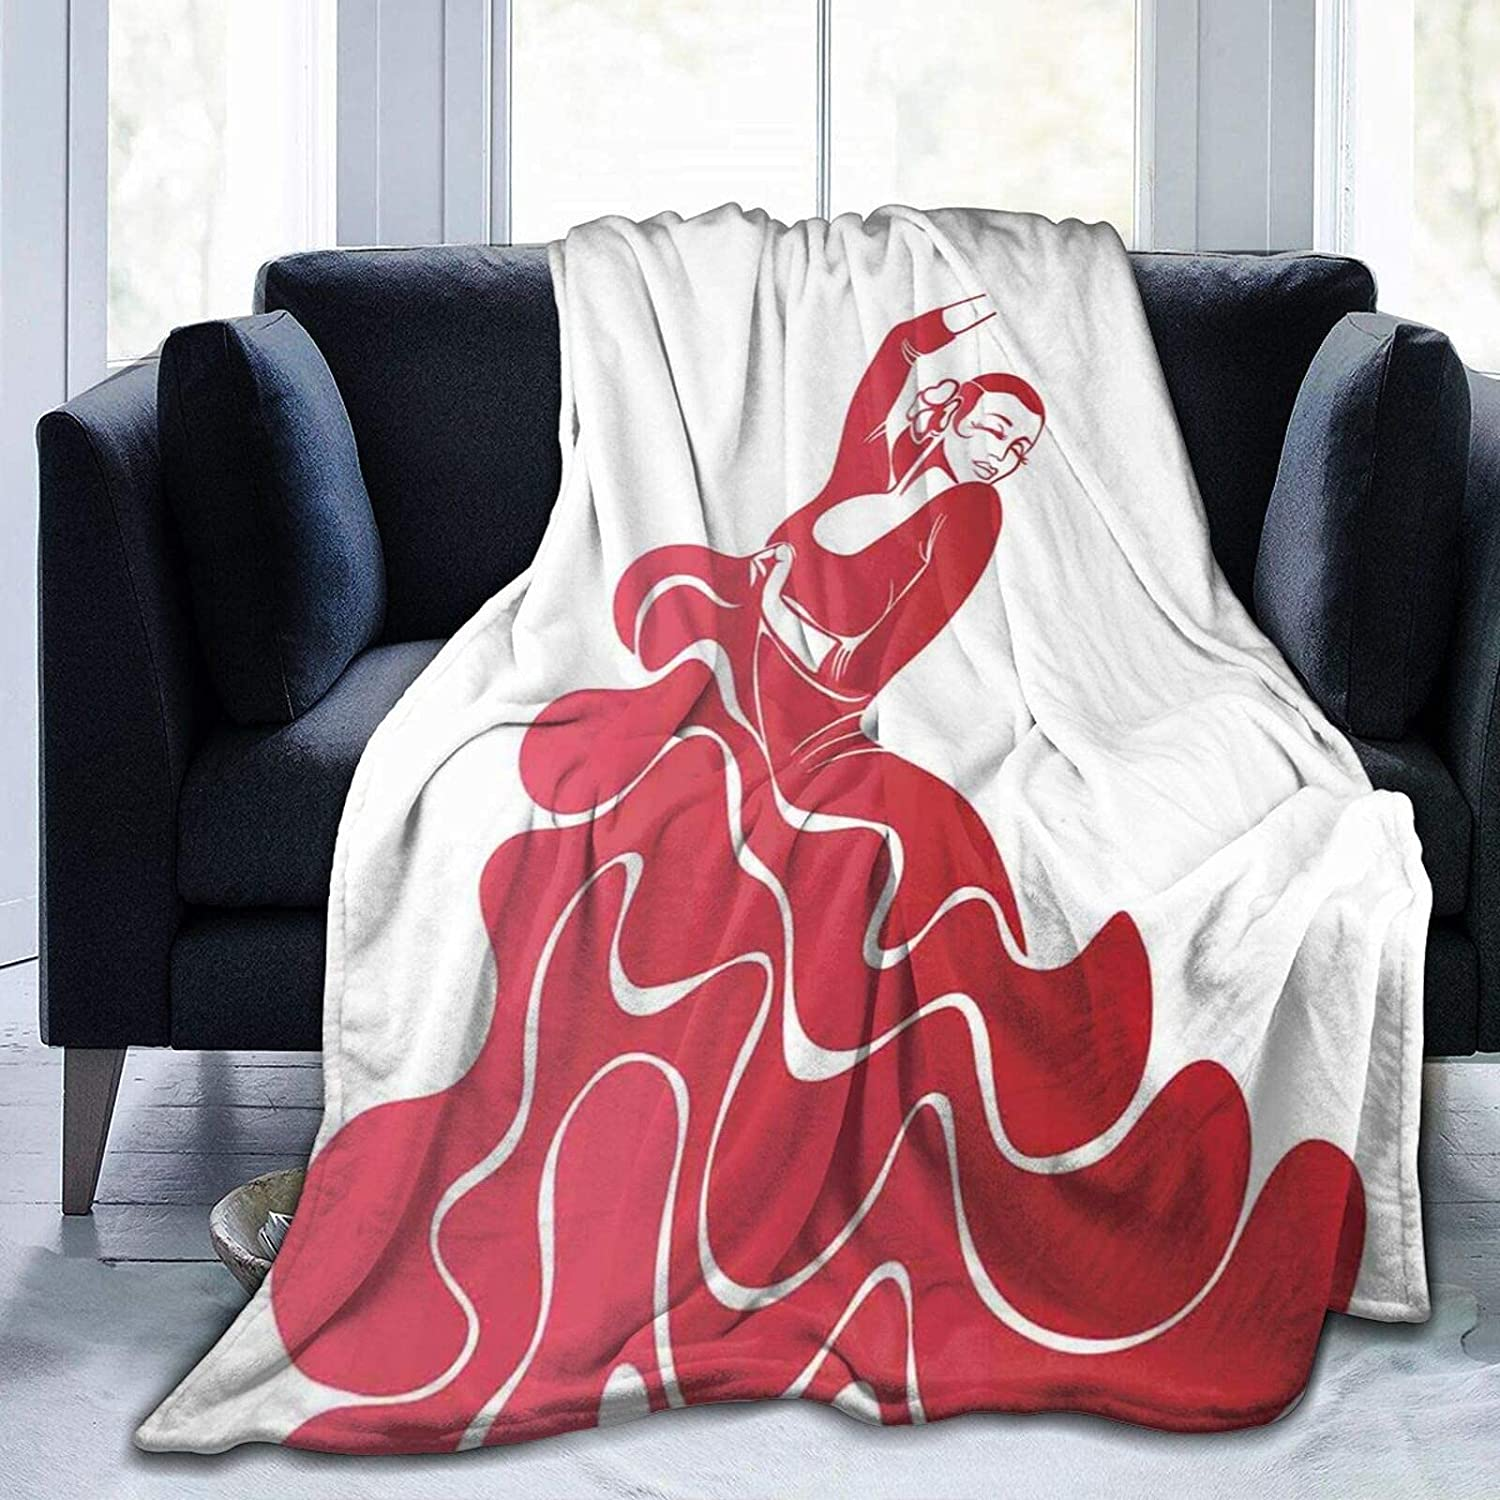 Fuzzy Throw Blanket Plush Fleece Unisex Blankets Translated for To Adults Max 78% OFF